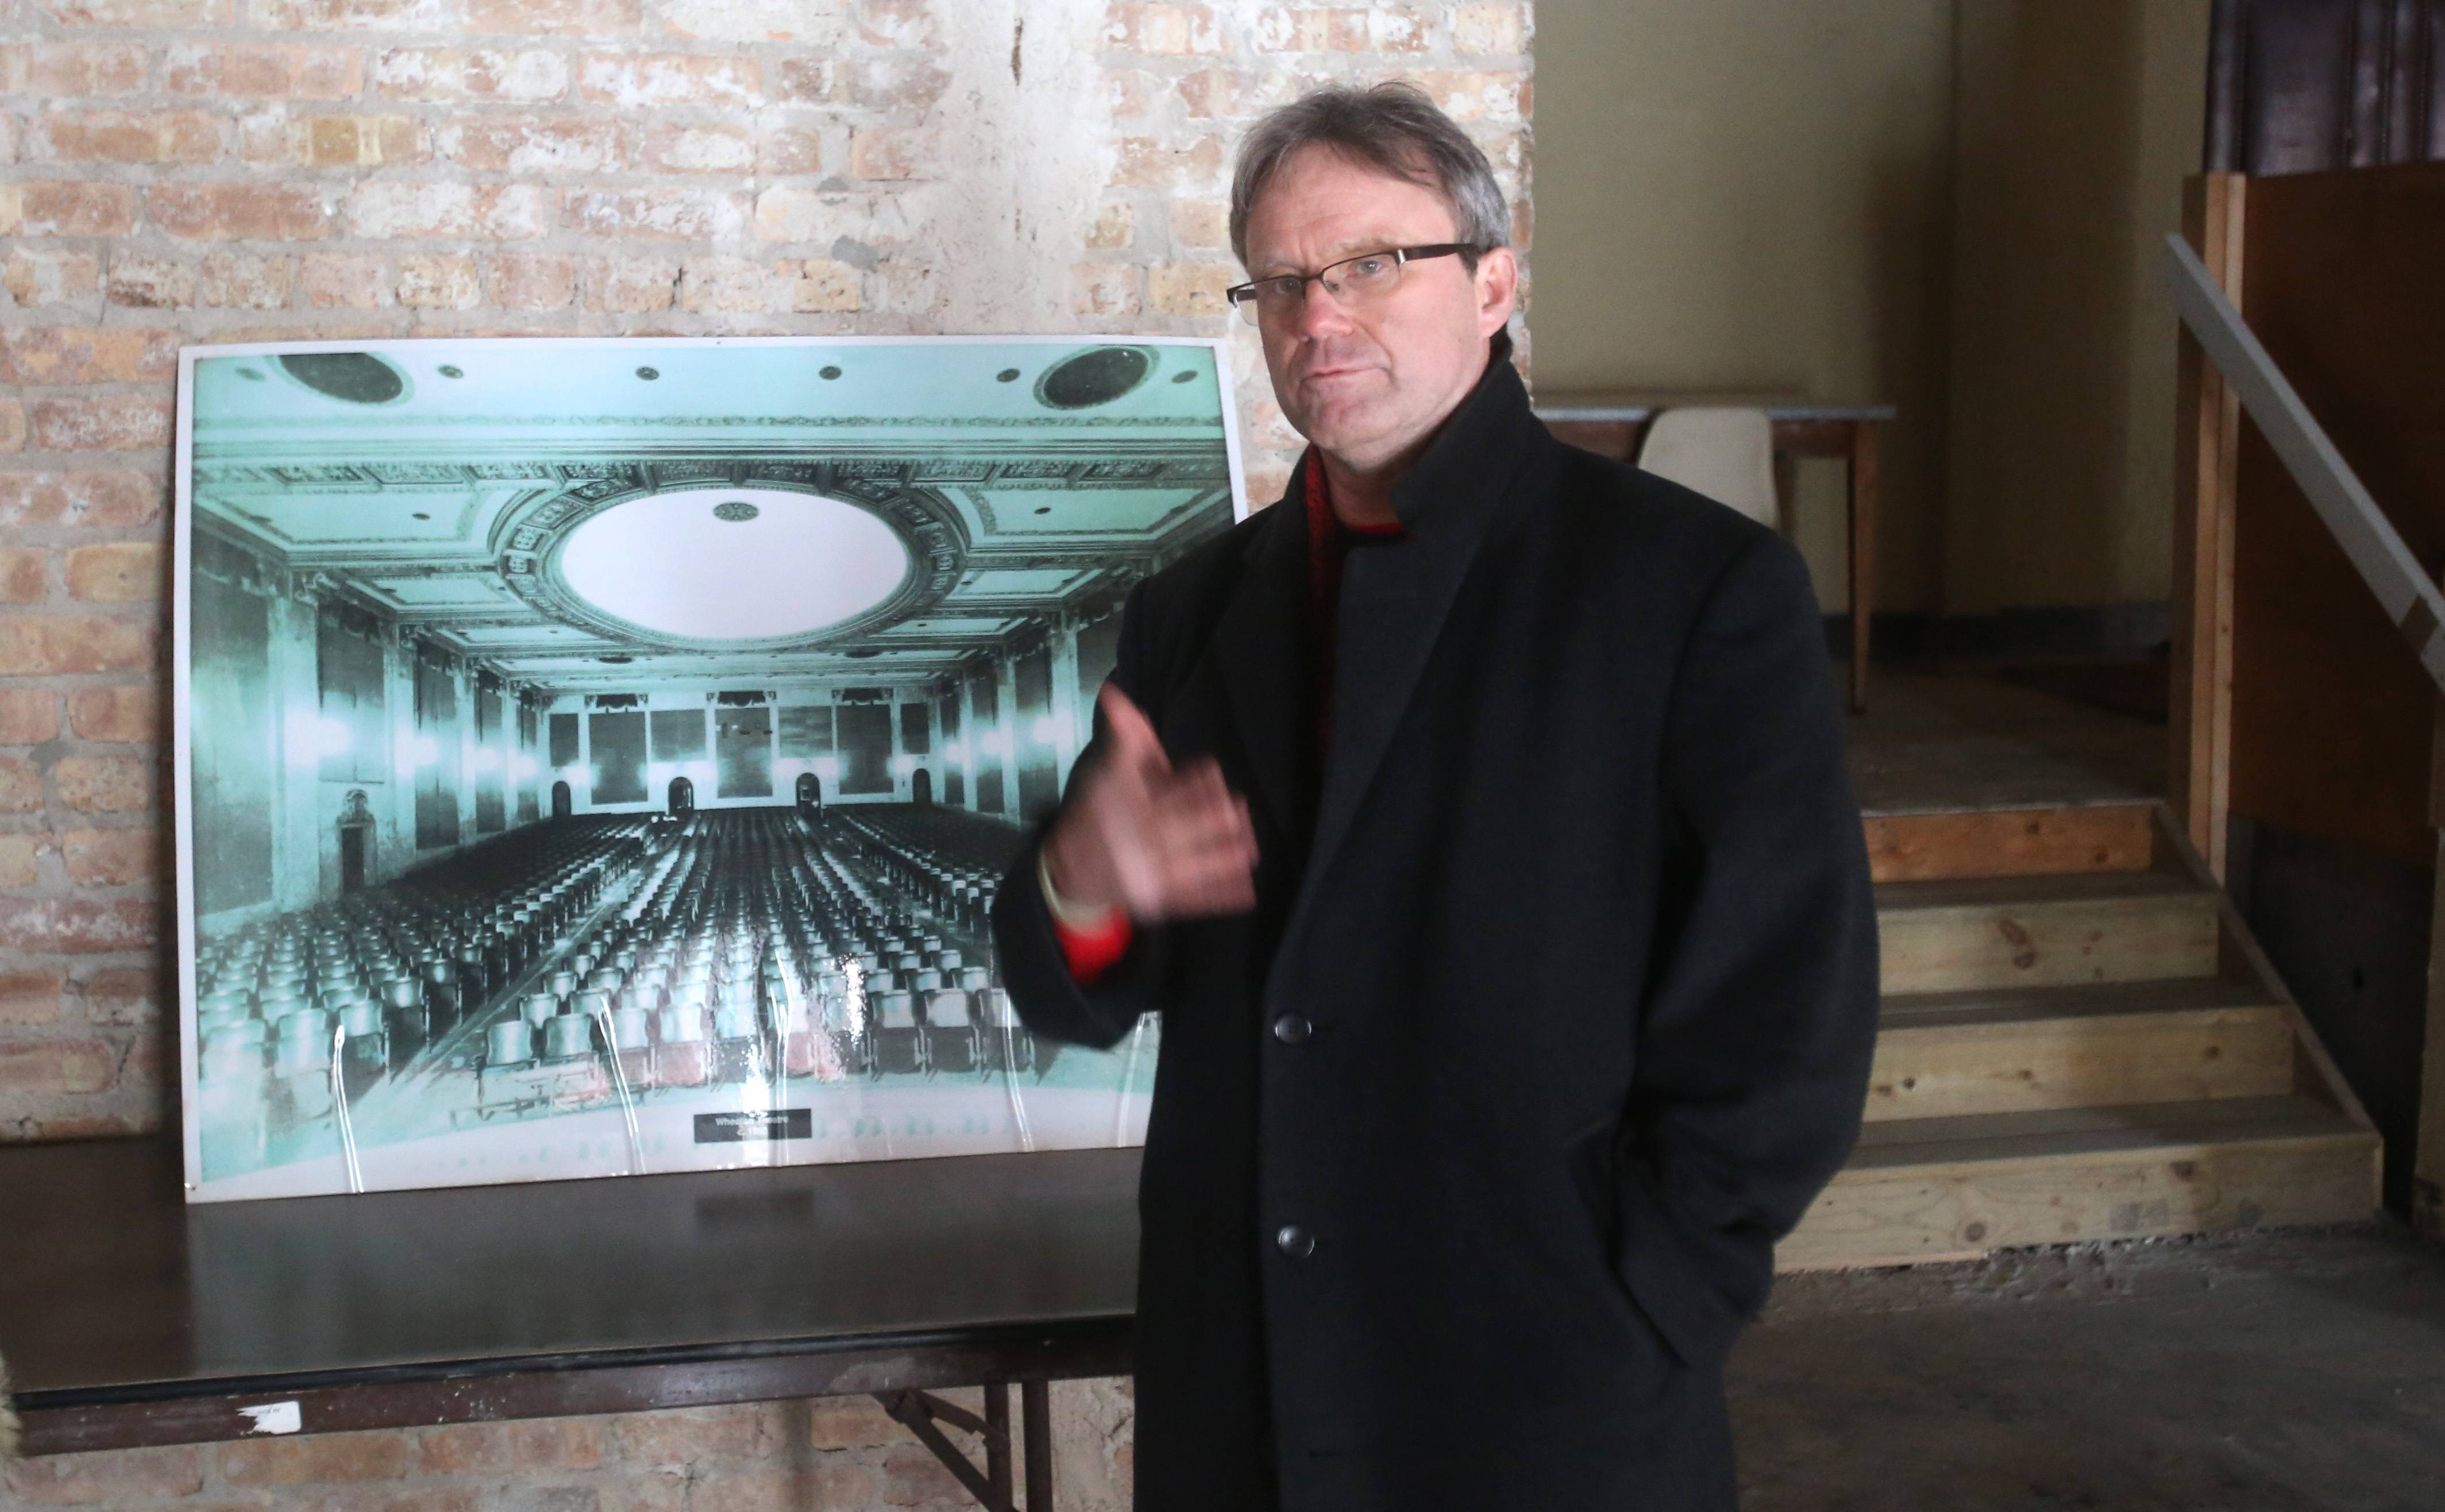 Flanked by a photo taken in 1950 of the Wheaton Grand Theater, Rick Erickson discusses plans to renovate it.